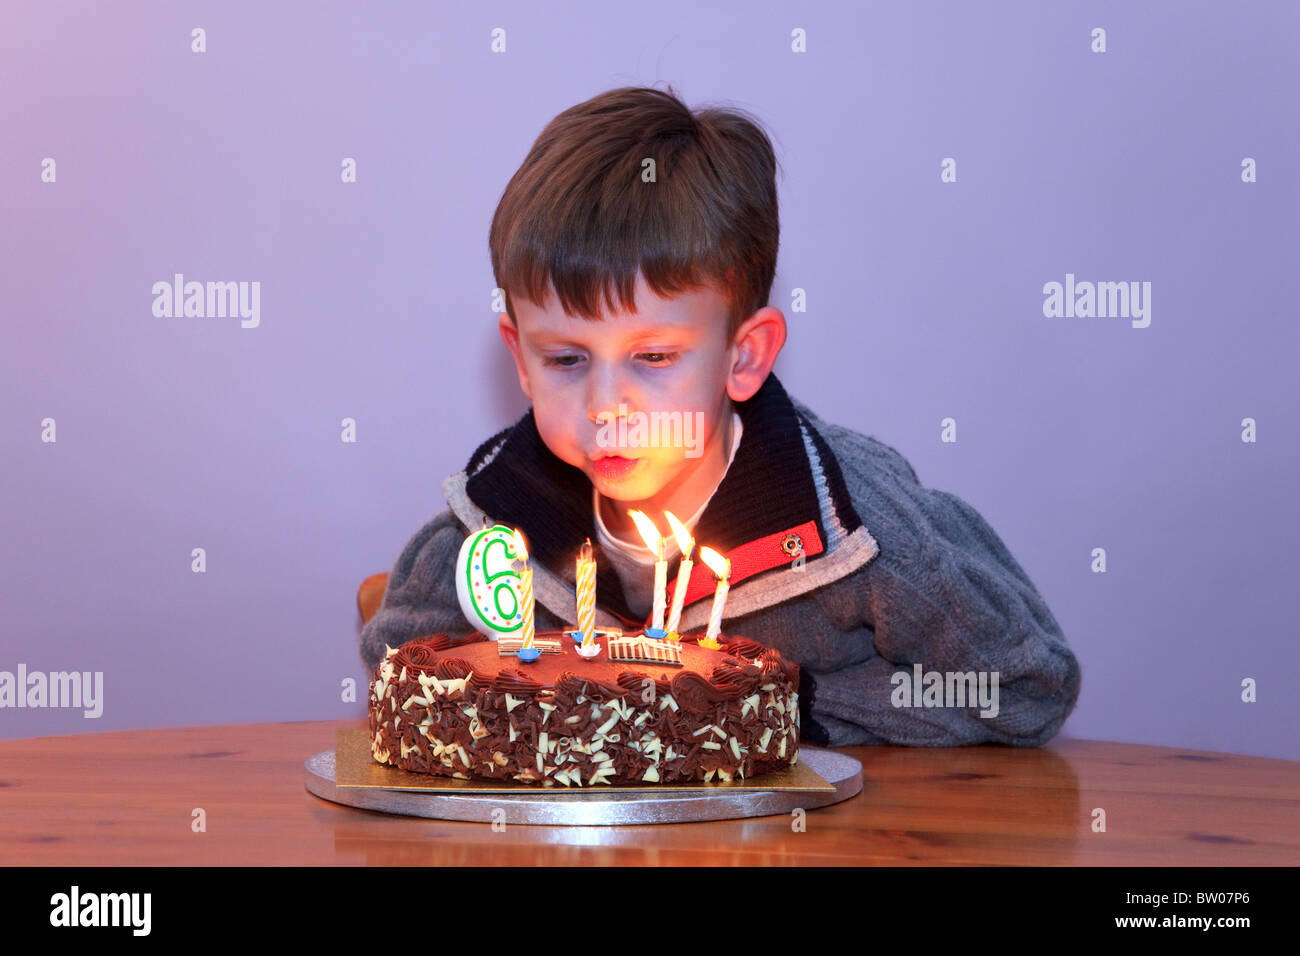 A 6 Year Old Boy Blowing Out The Candles On His Birthday Cake Stock Photo Alamy